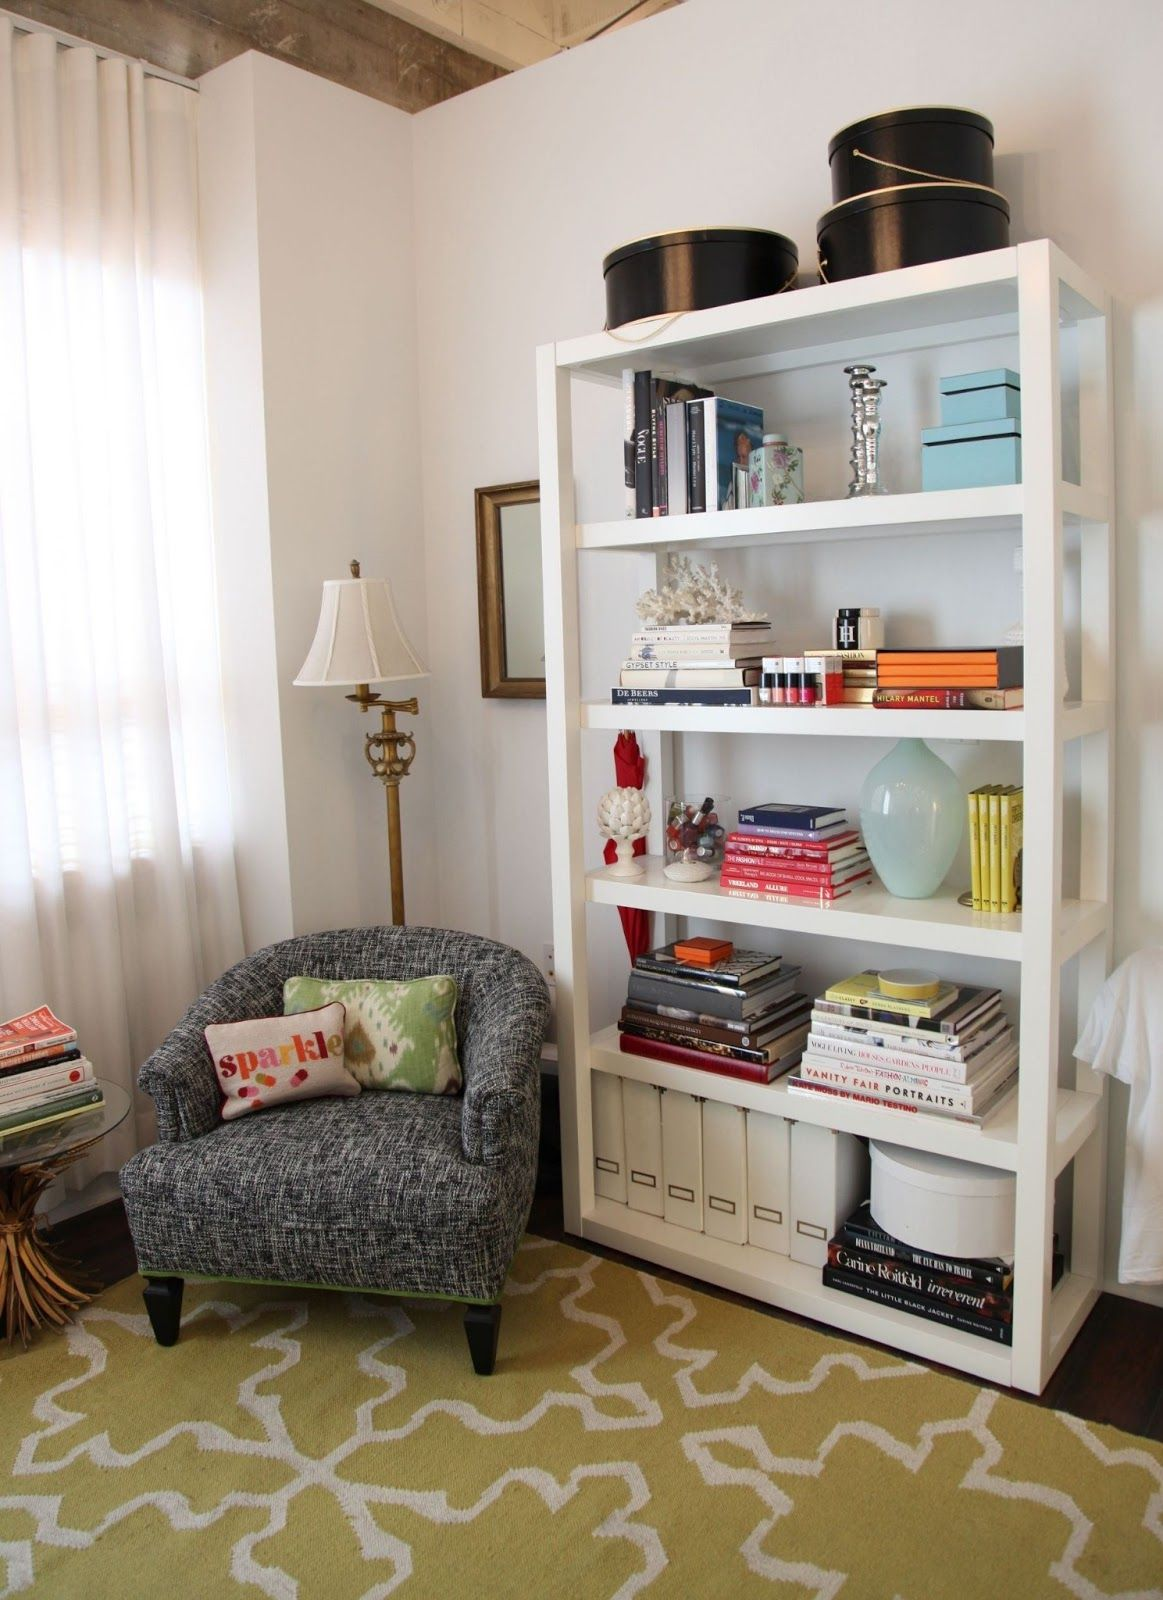 Parsons Bookshelf From West Elm In The Who What Wear Office Via Habitually Chic